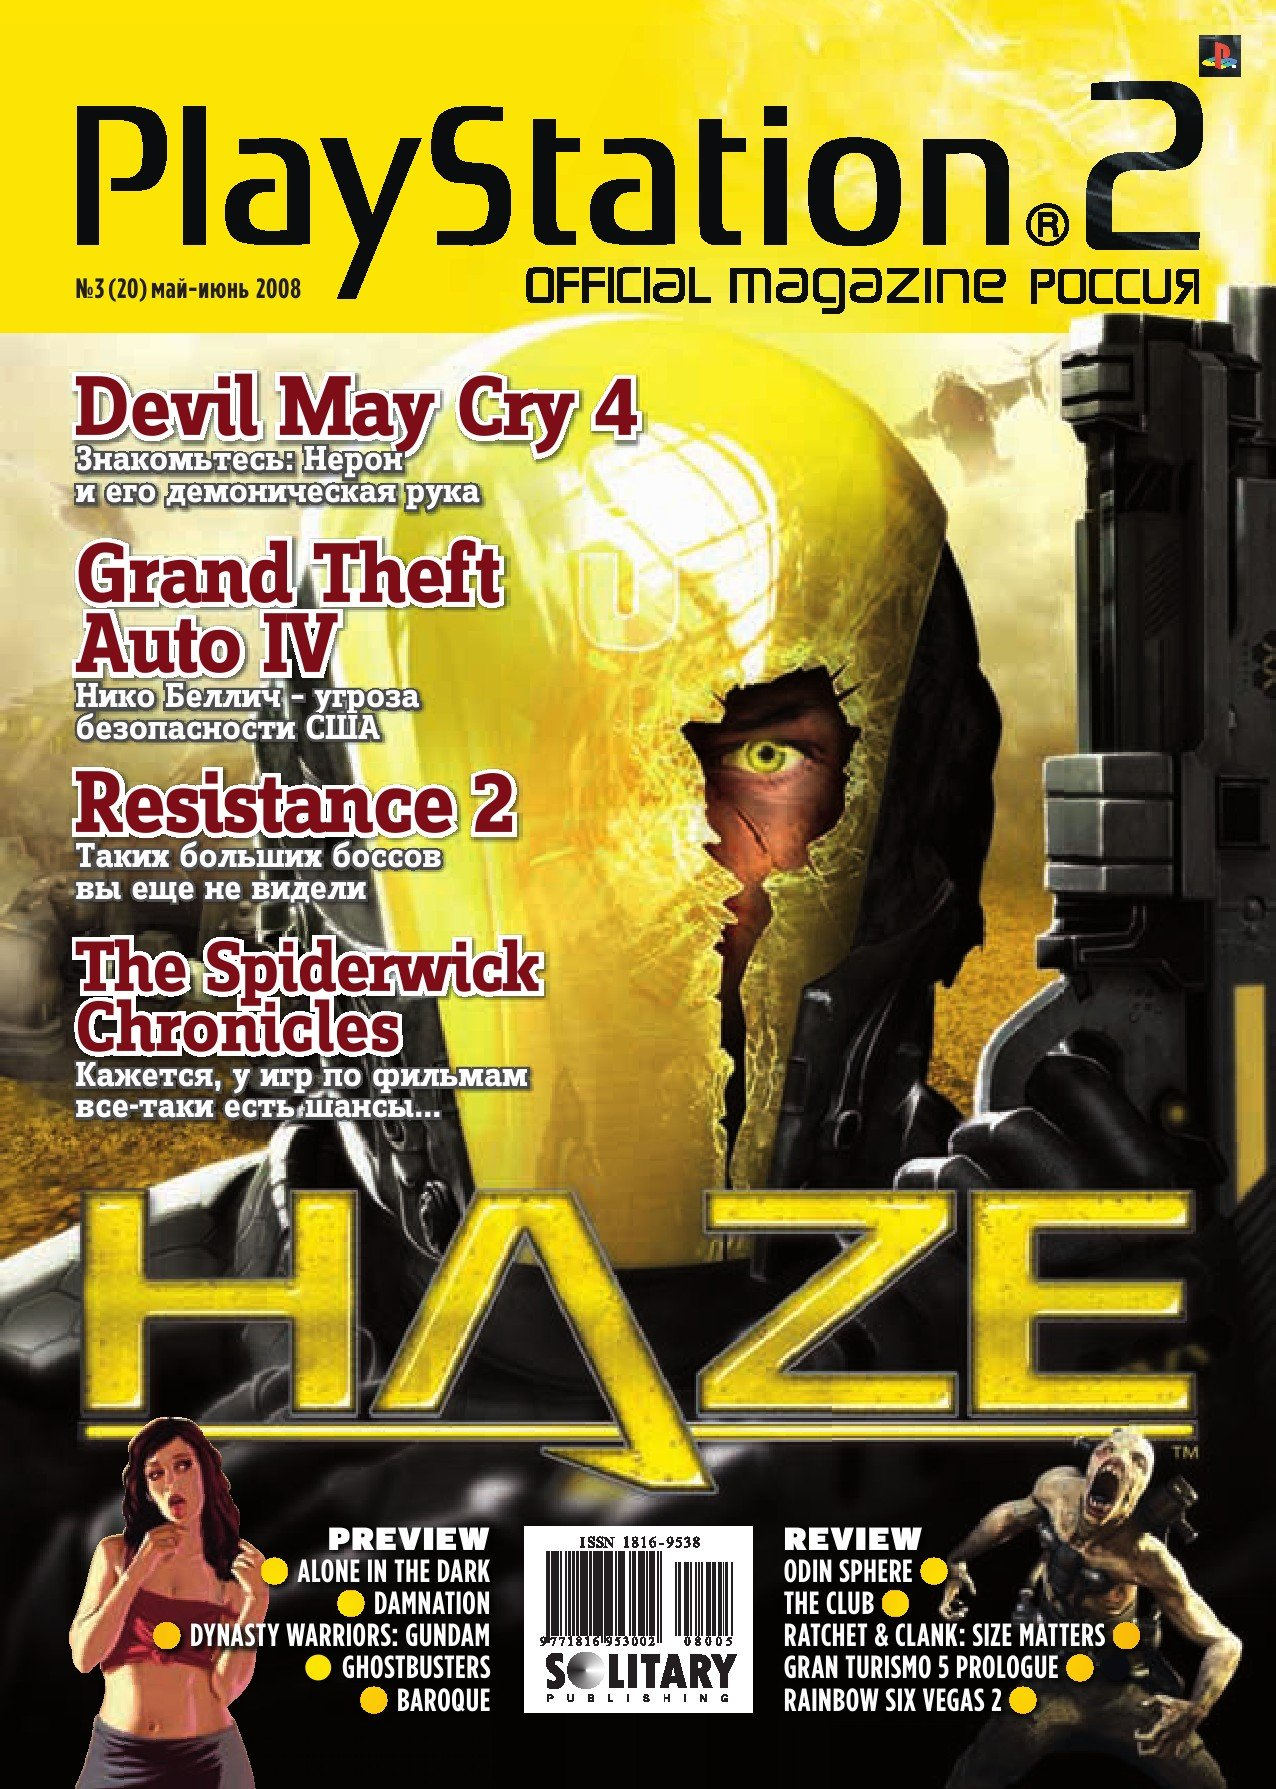 Playstation 2 Official Magazine (Russia) Issue 20 - May/Jun. '08